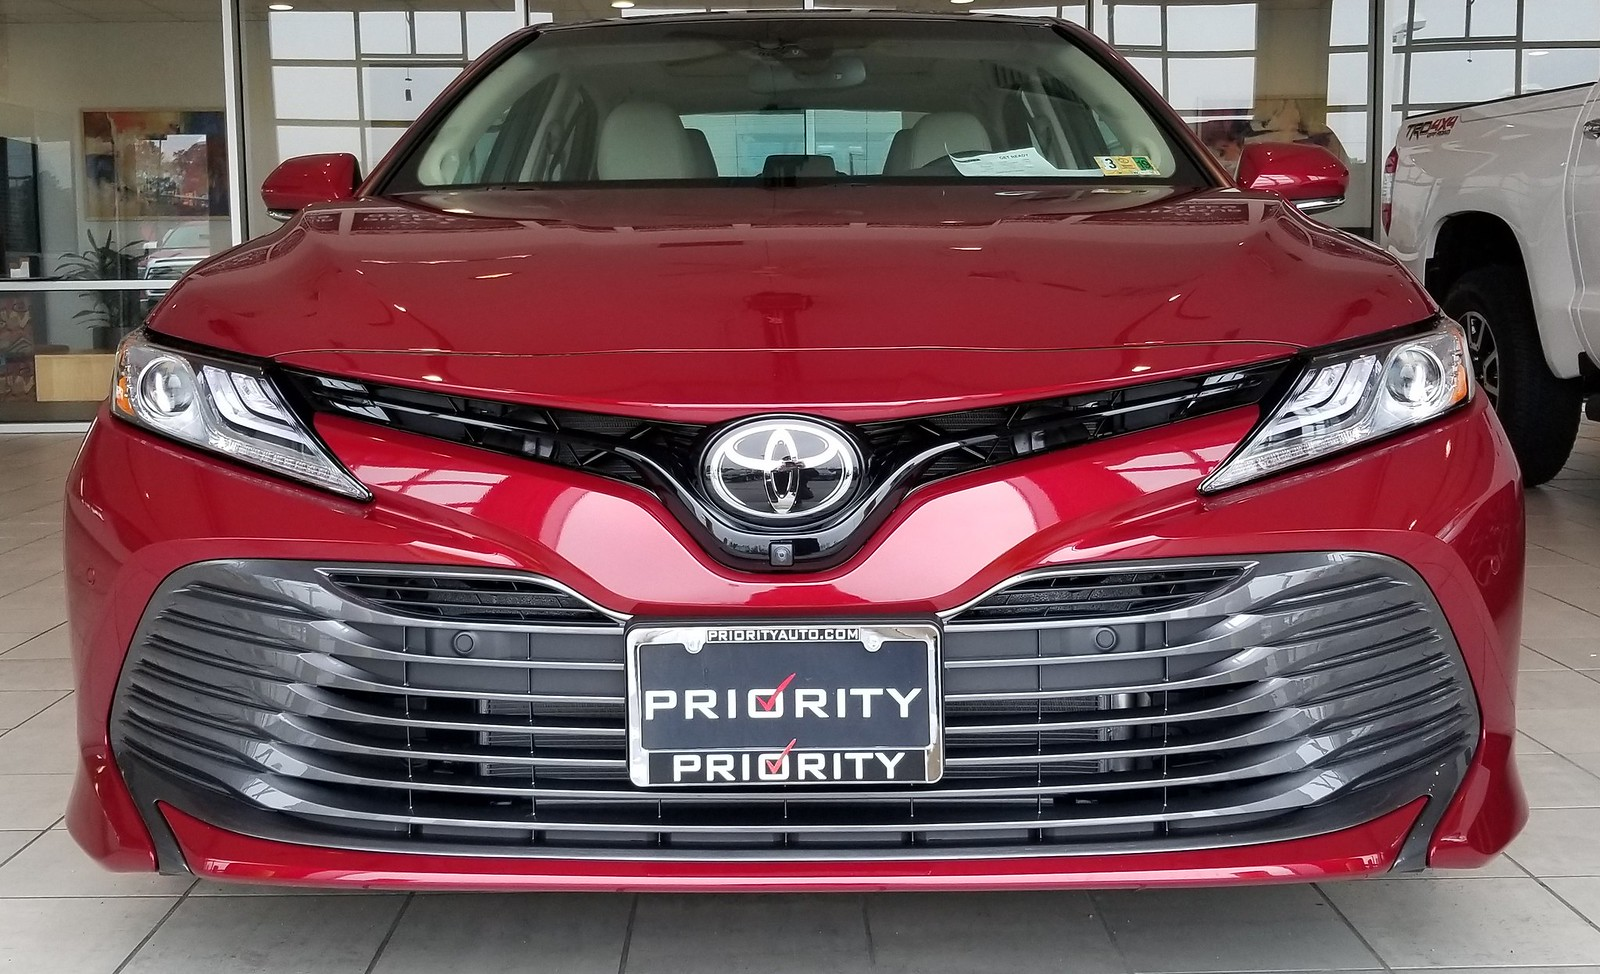 Is it better to wait for 2019 Camry or buy 2018? | Toyota